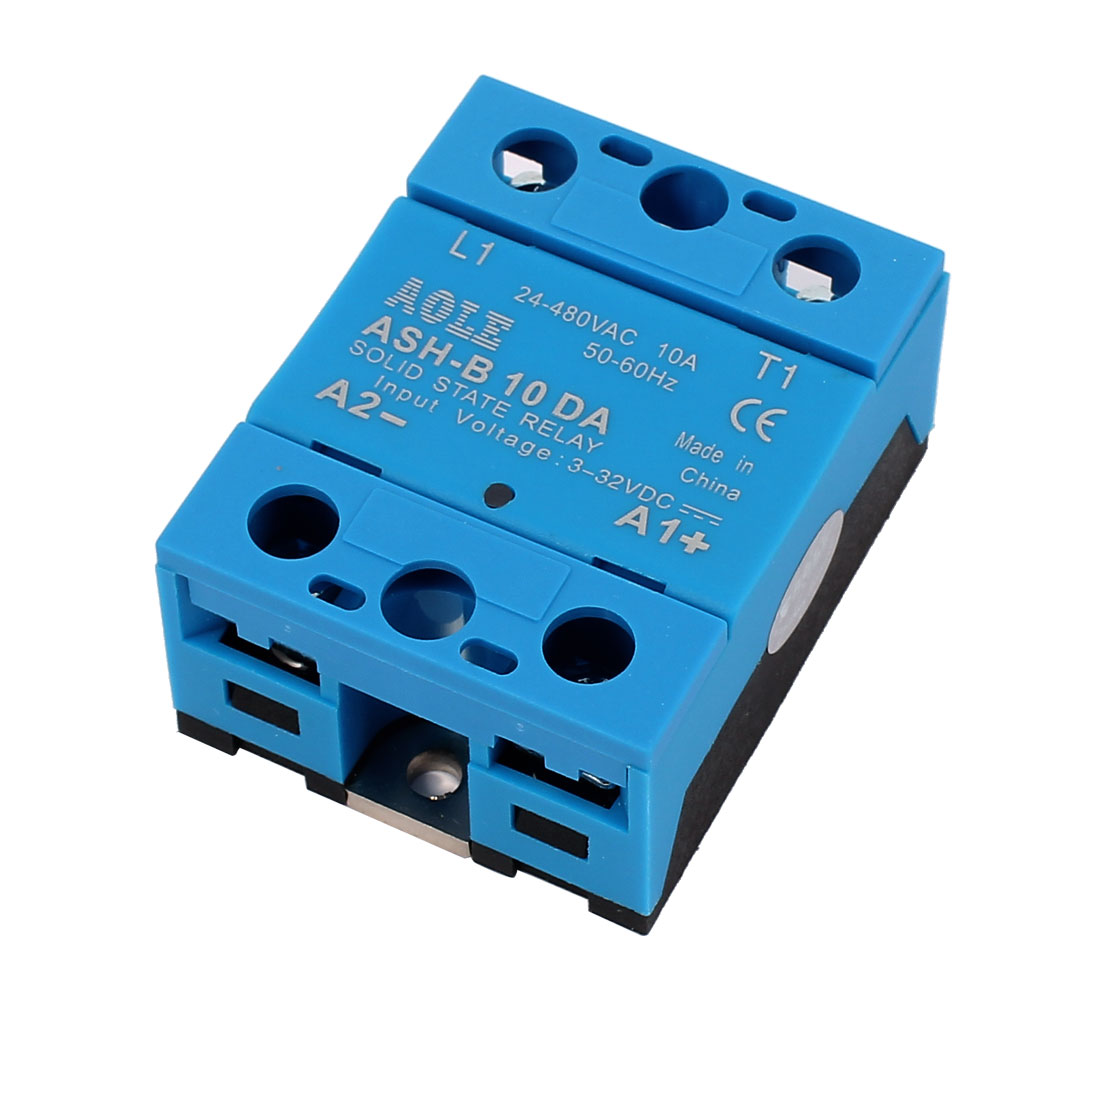 Solid State Relay Voltage Ash 10da 3 32vdc To 480vac 10a Single Phase Dc Ac Qty